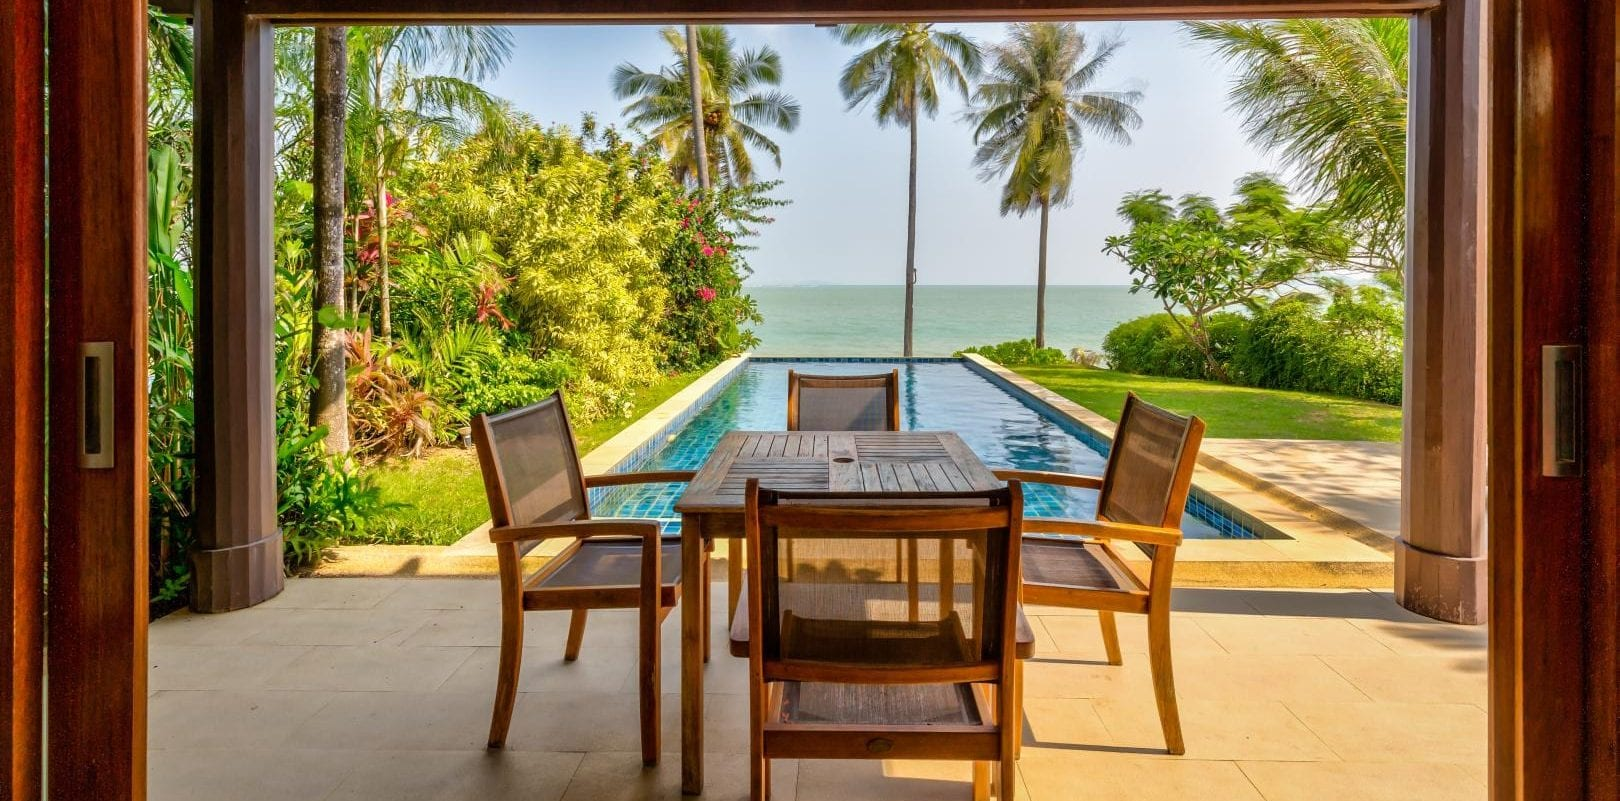 ABSOLUTE BEACH FRONT VILLA for sale 2-Bed. Best value in Phuket